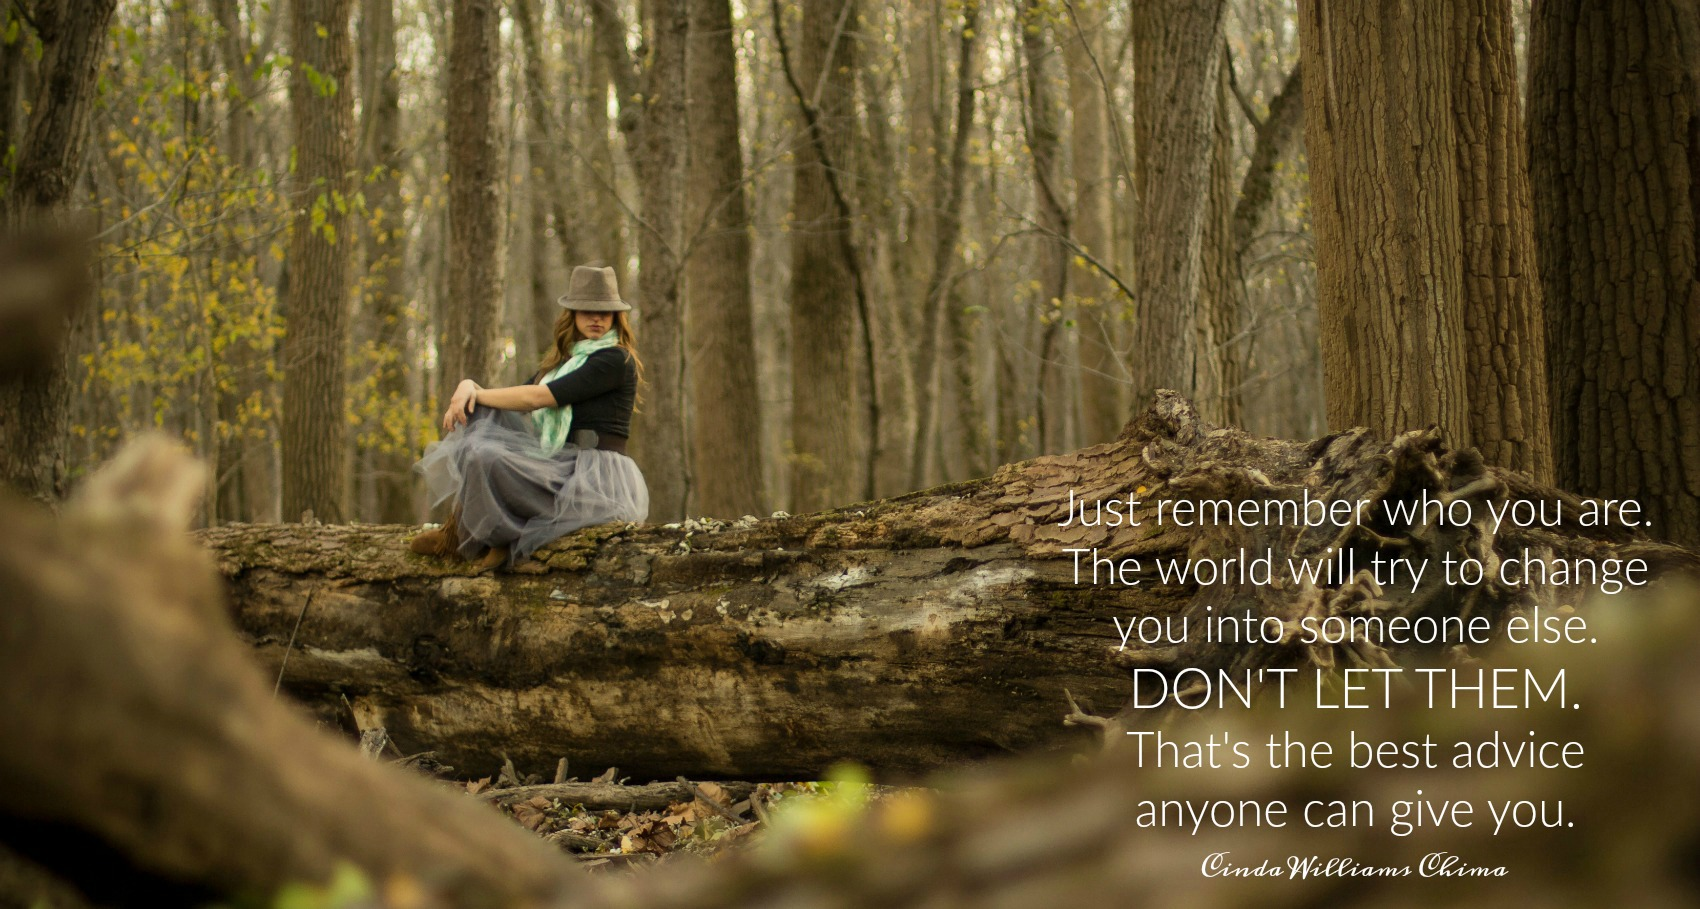 Just remember who you are. The world will try to change you into someone else. Don't let them. That's the best advice anyone can give you. Cinda Williams Chima. Circle of Daydreams. www.circleofdaydreams.com